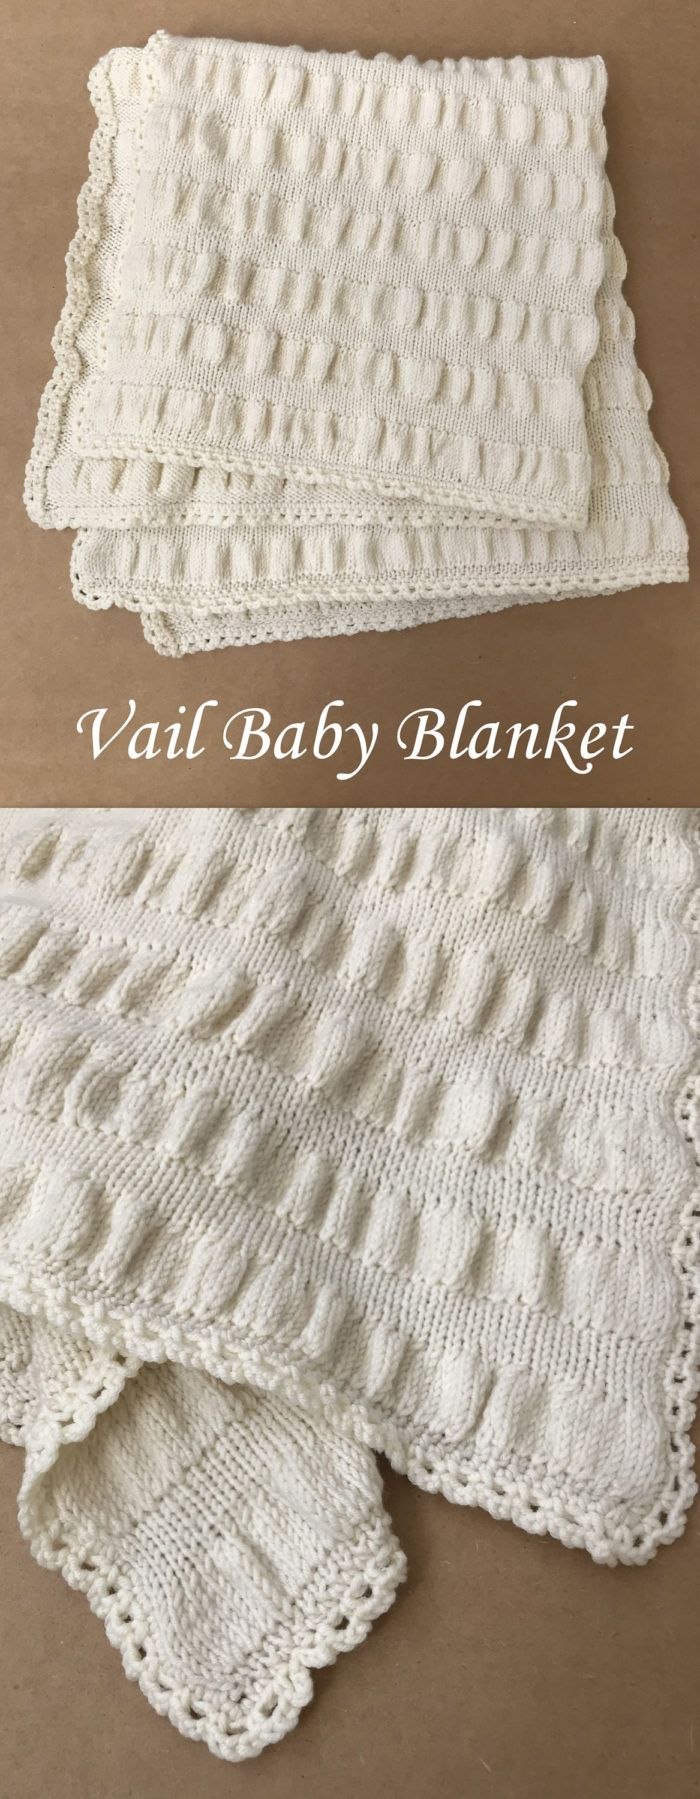 Knitting Pattern for Vail Baby Blanket - Easy baby blanket with ...